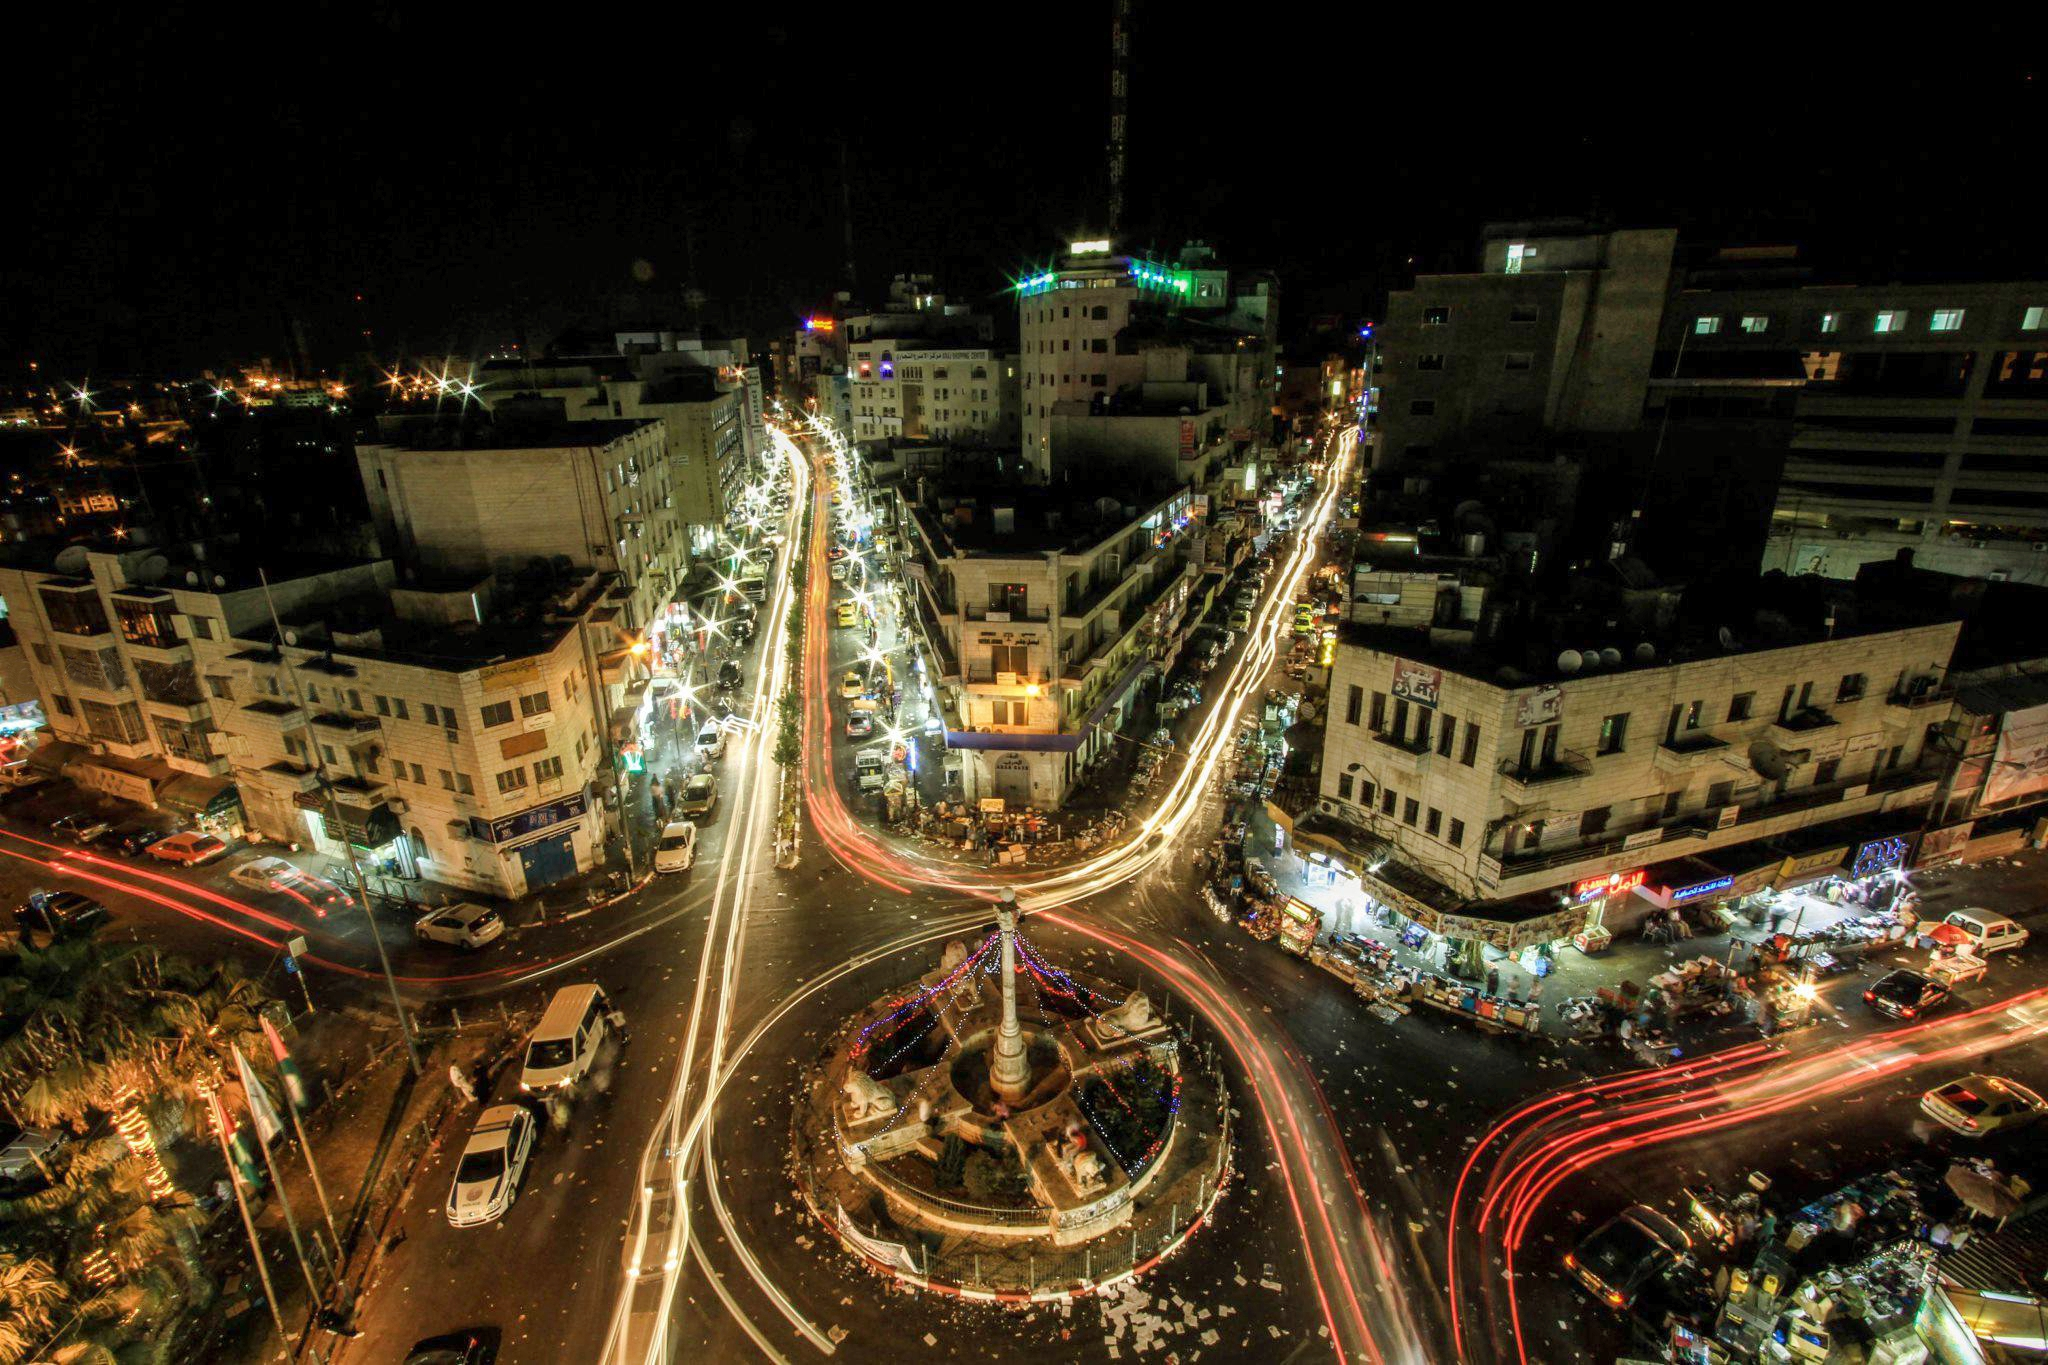 Ramallah - رام الله : RAMALLAH - Al-Manarah at night 5 (Per Ahmad Odeh)